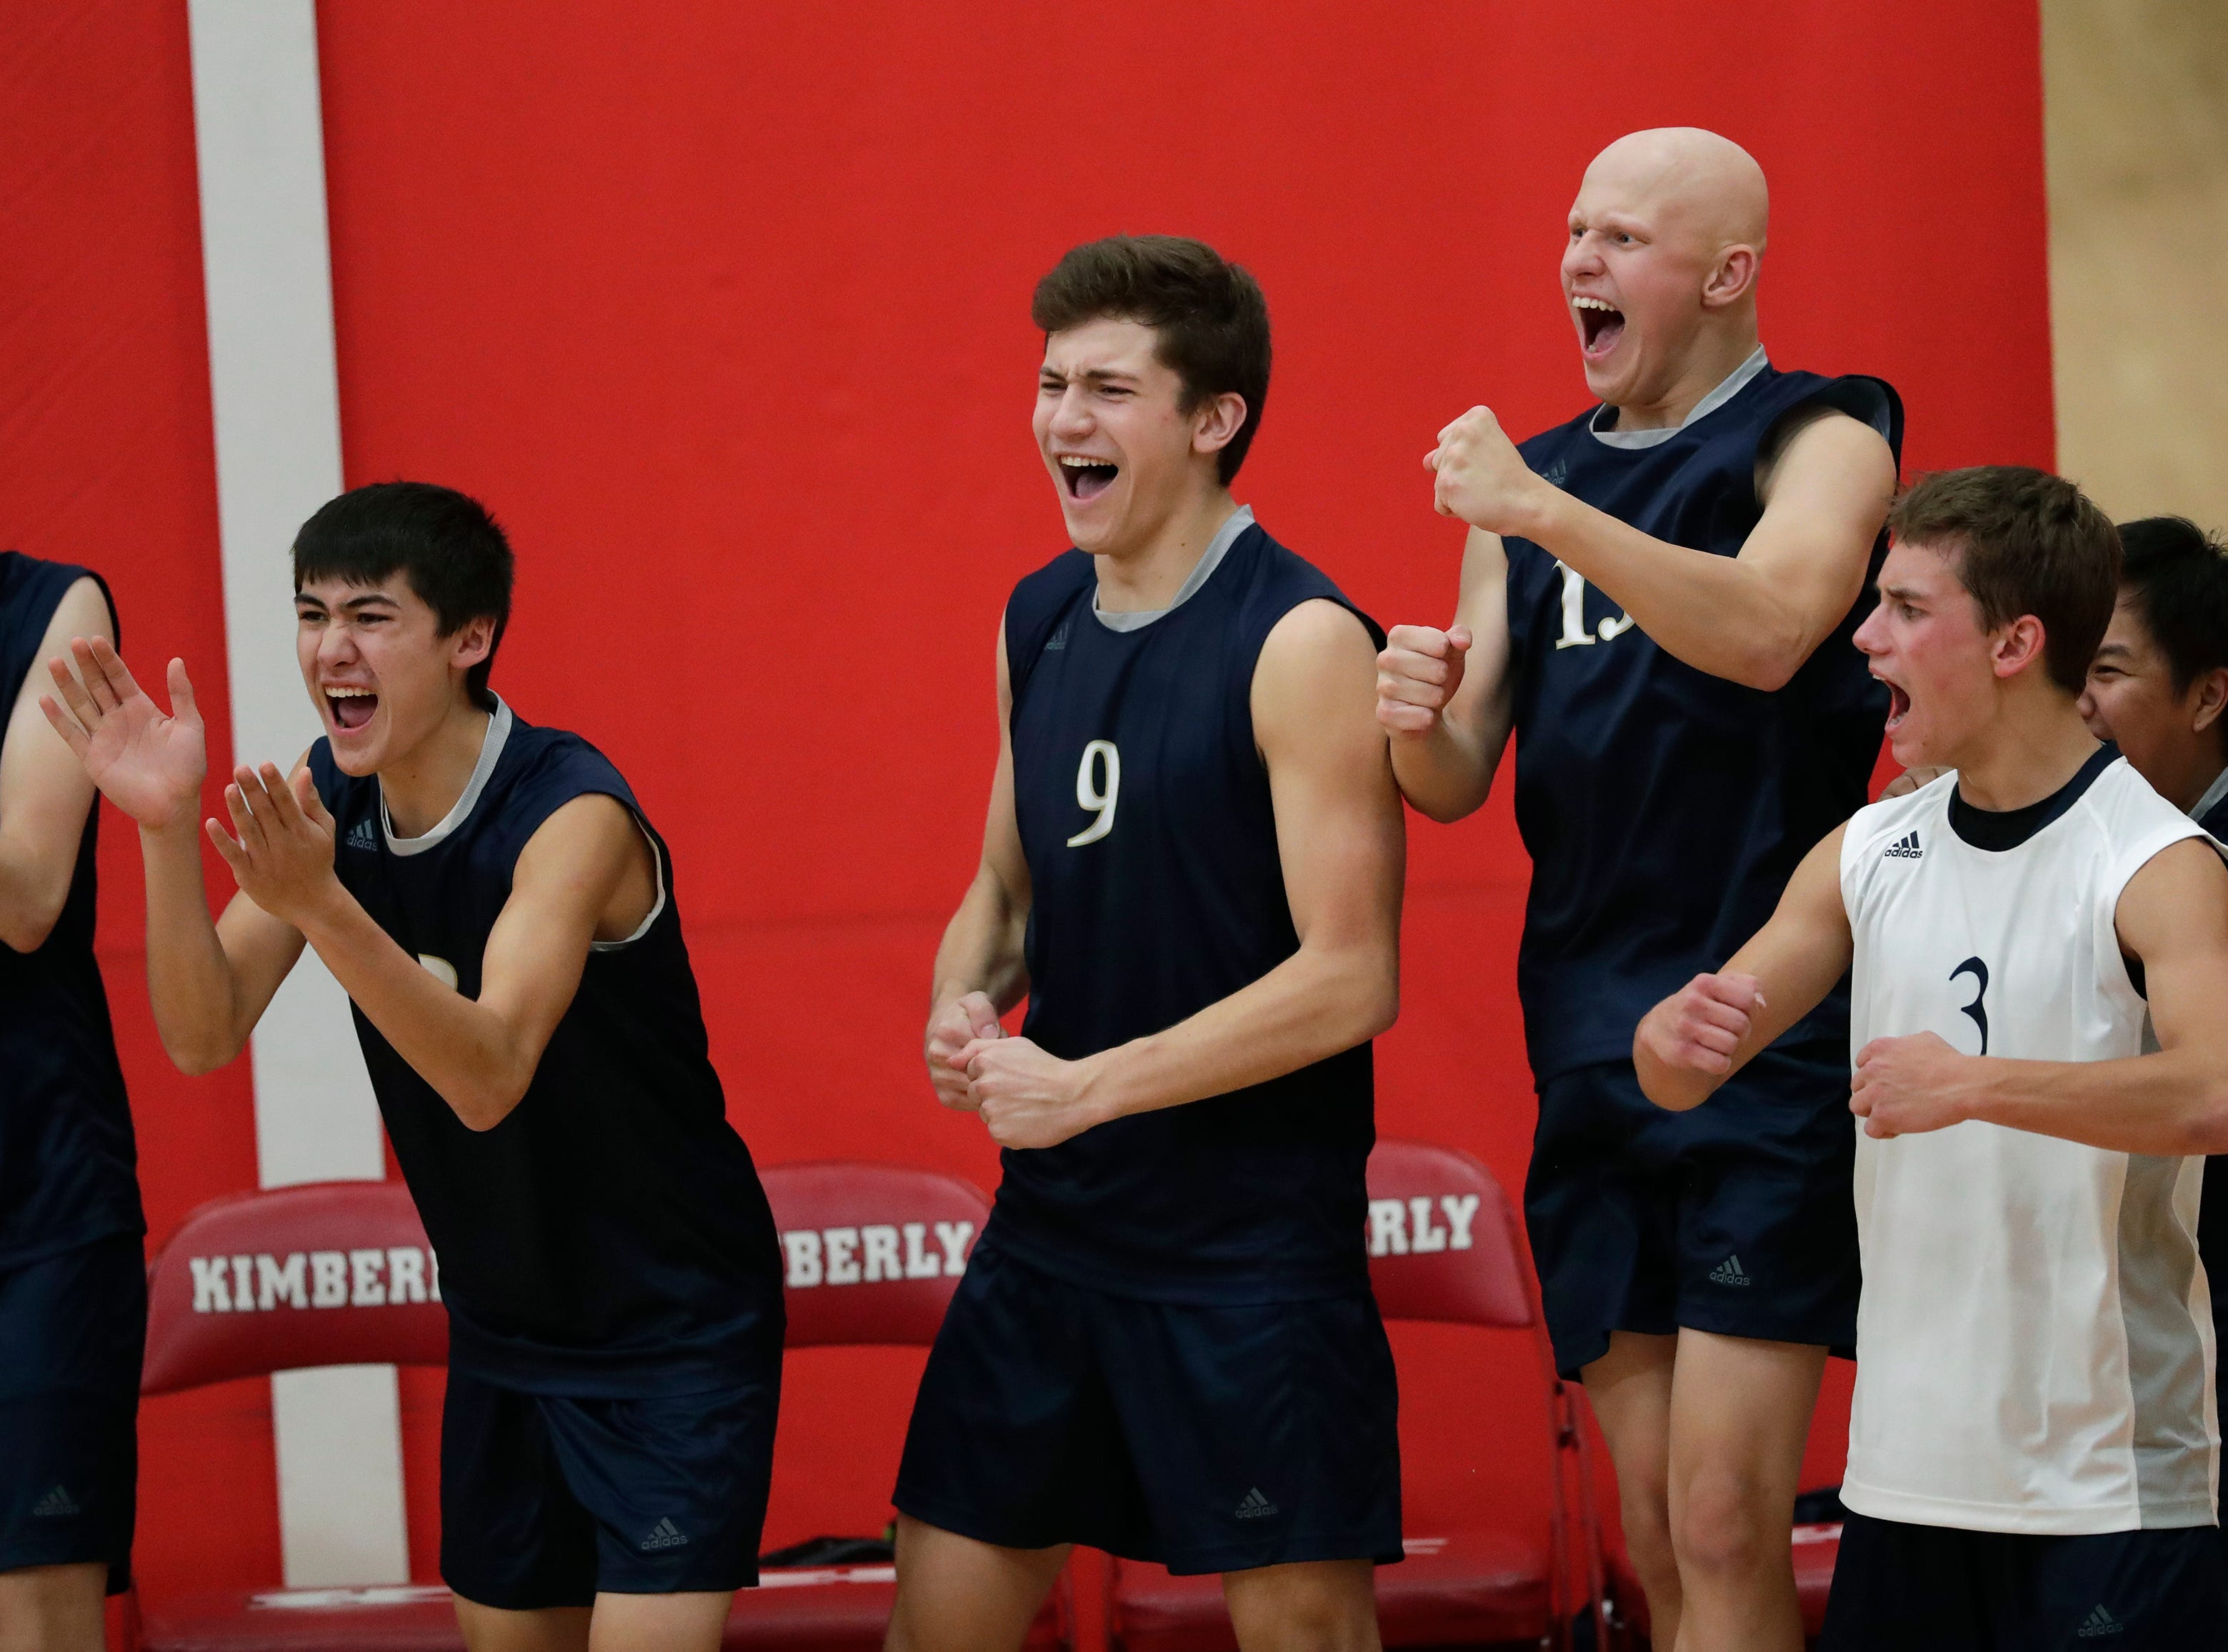 Appleton North High School's players celebrate winning a point against Kimberly High School during their boys volleyball match Tuesday, Oct. 9, 2018, in Kimberly, Wis. 